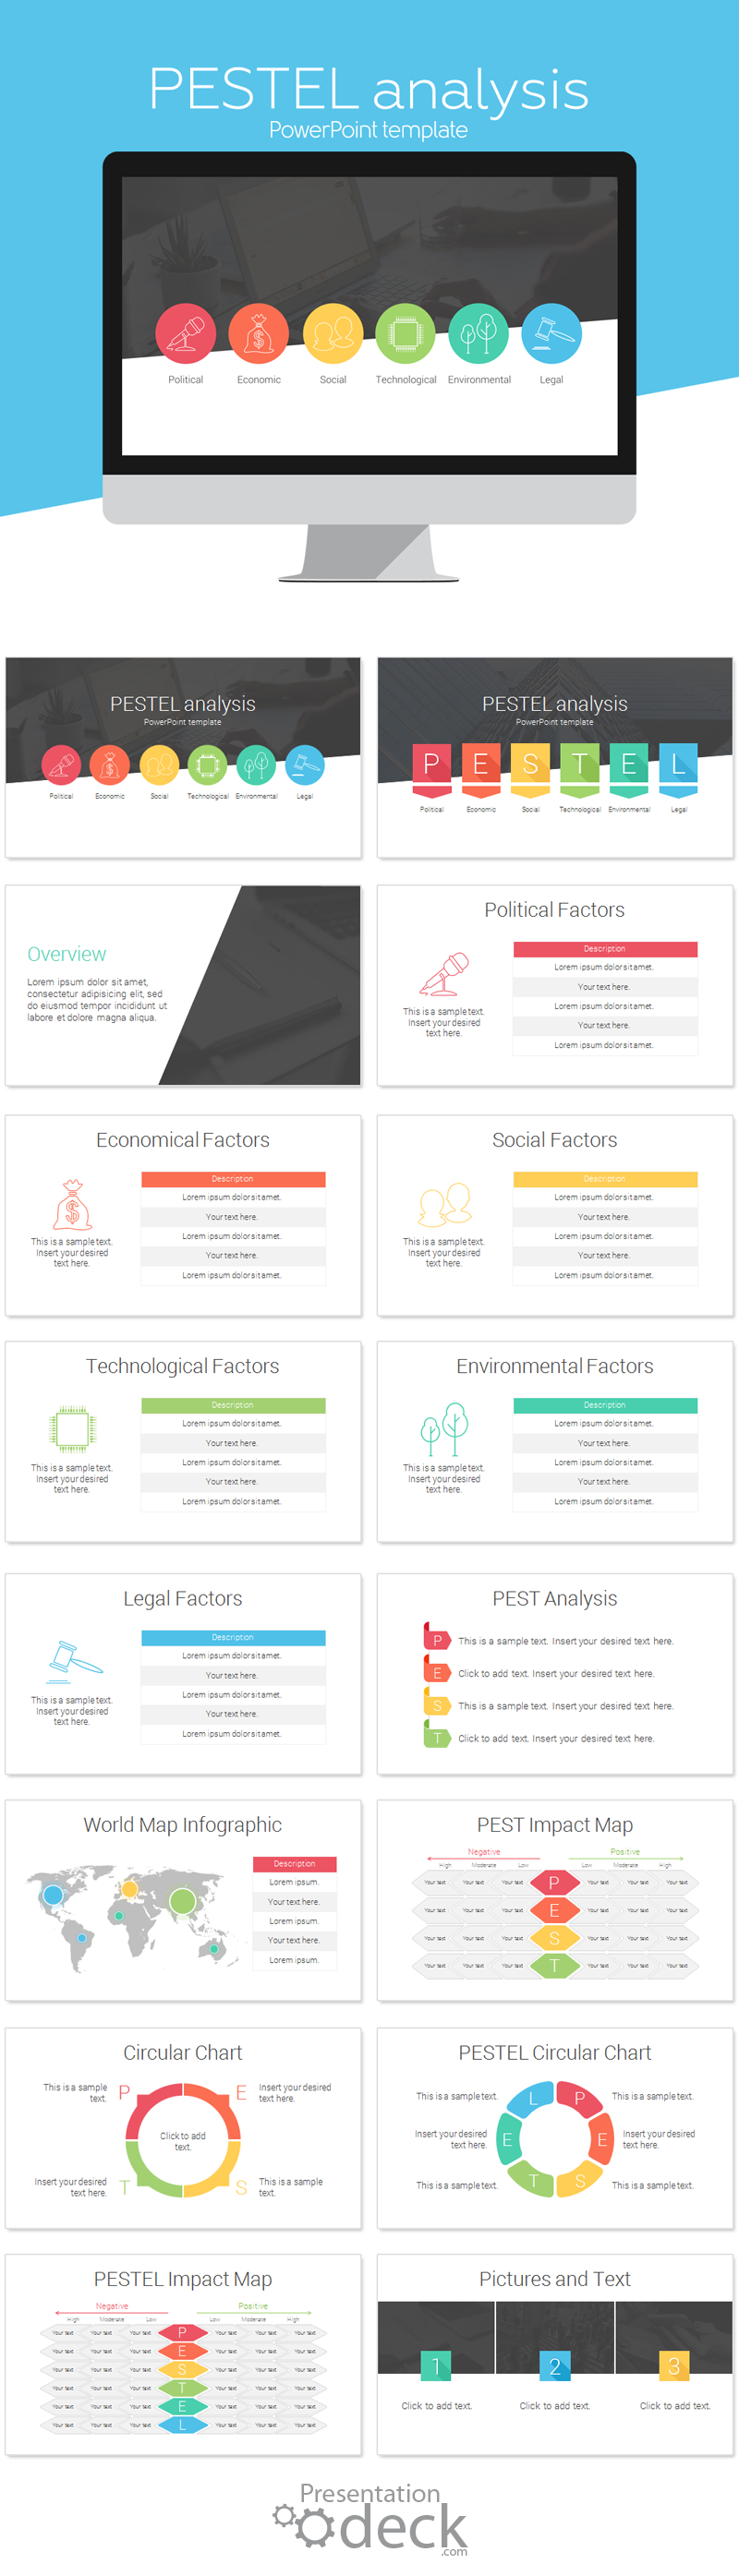 pest analysis template Pestle analysis is a technique used for analysing the external envrionement surrounding an organisation when investigating business change pestle is an acrronym which stands for political, economic, sociological, technological, legal, environmental.